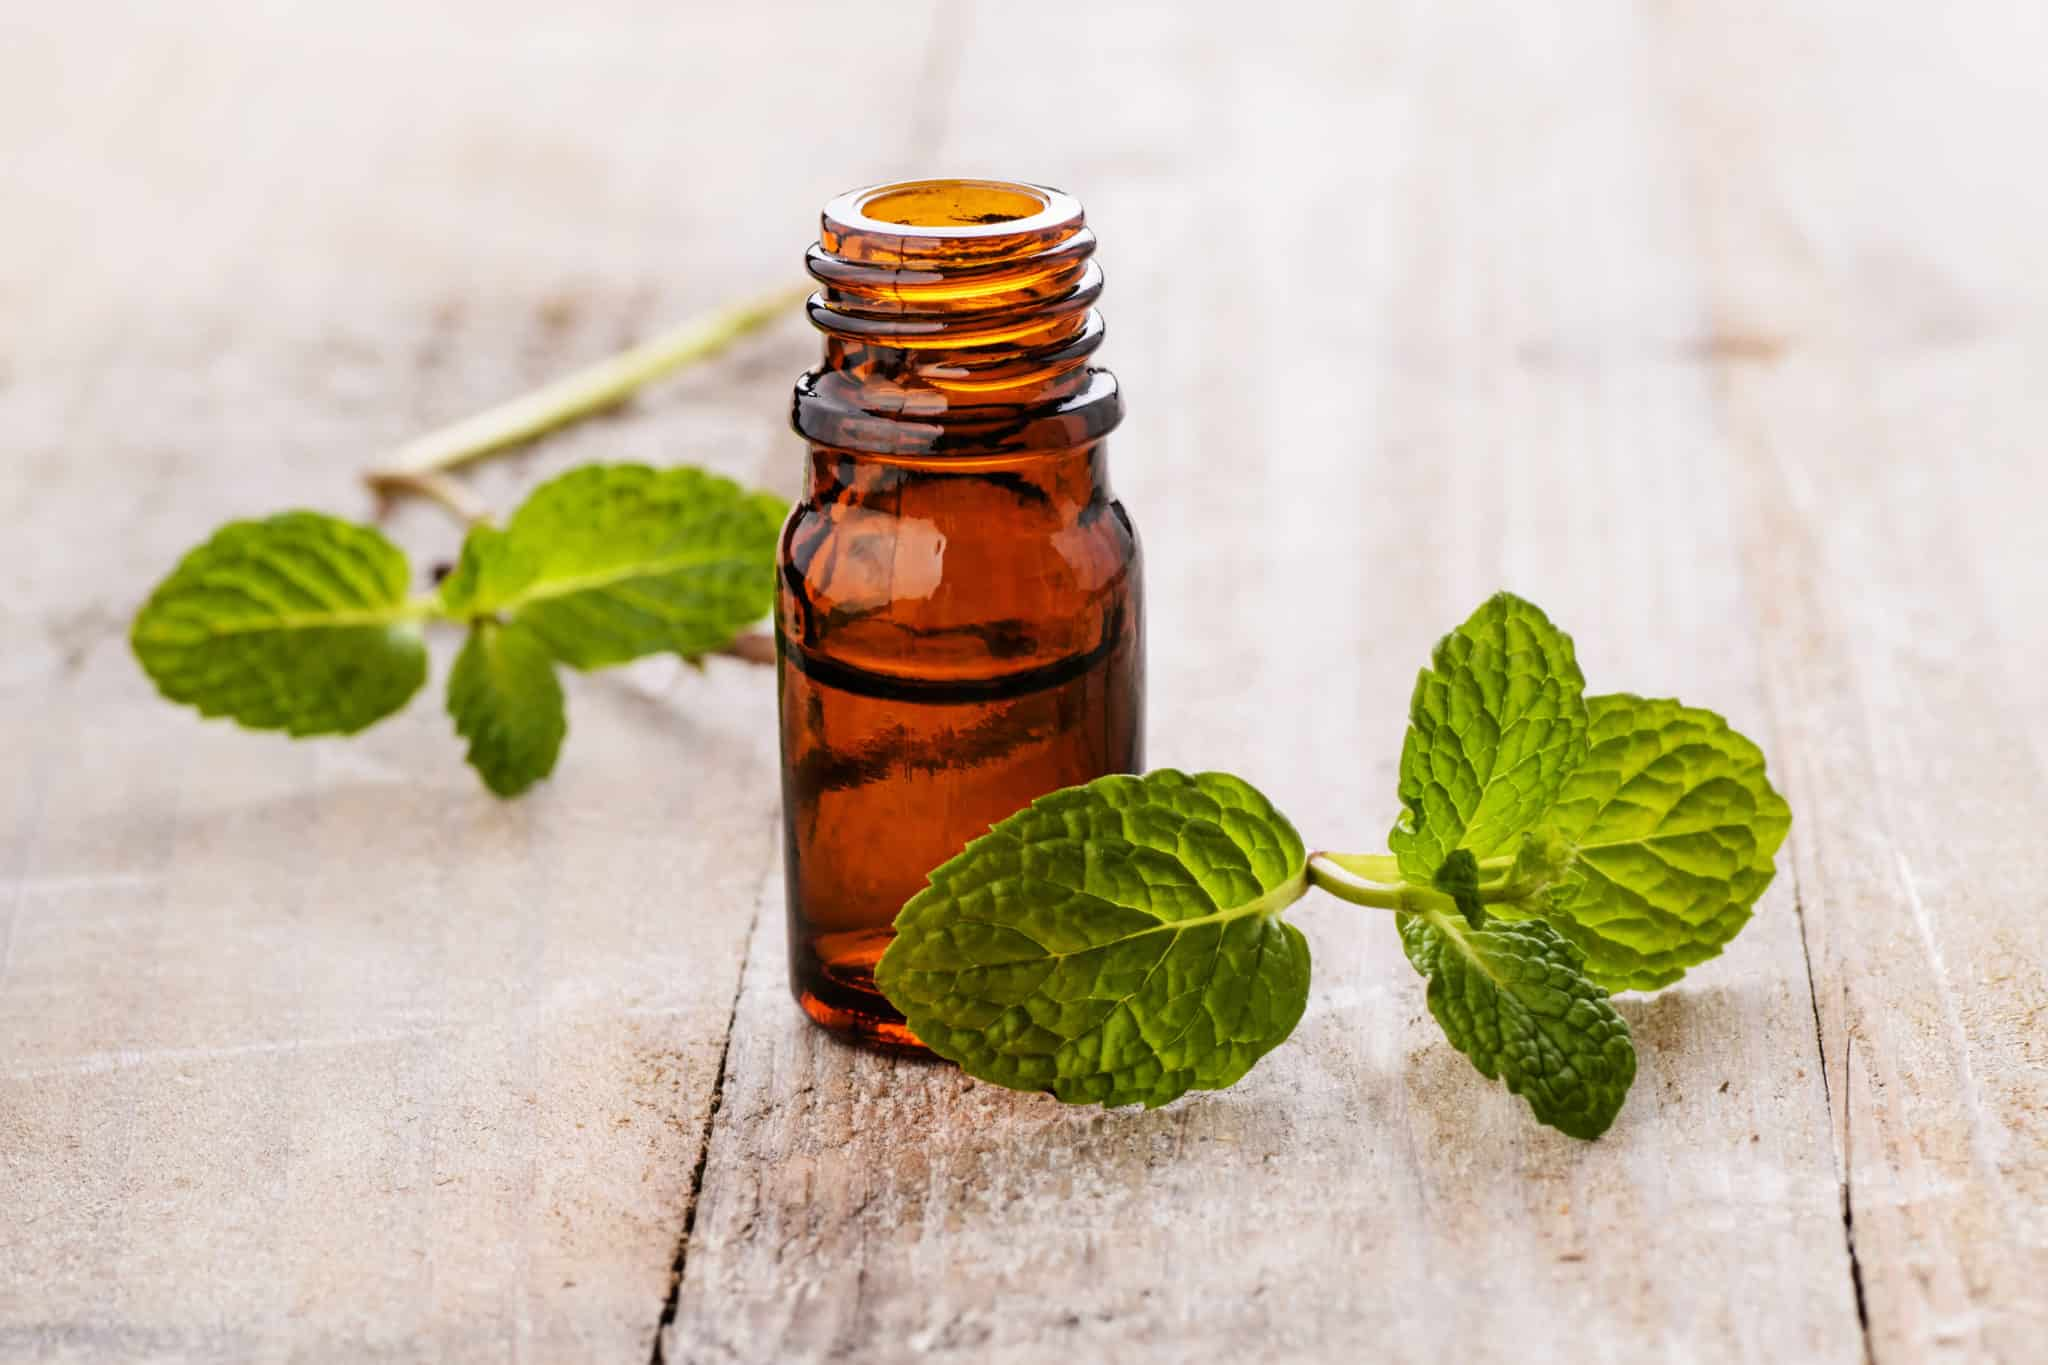 Brown bottle of peppermint oil with fresh mint leaves on table